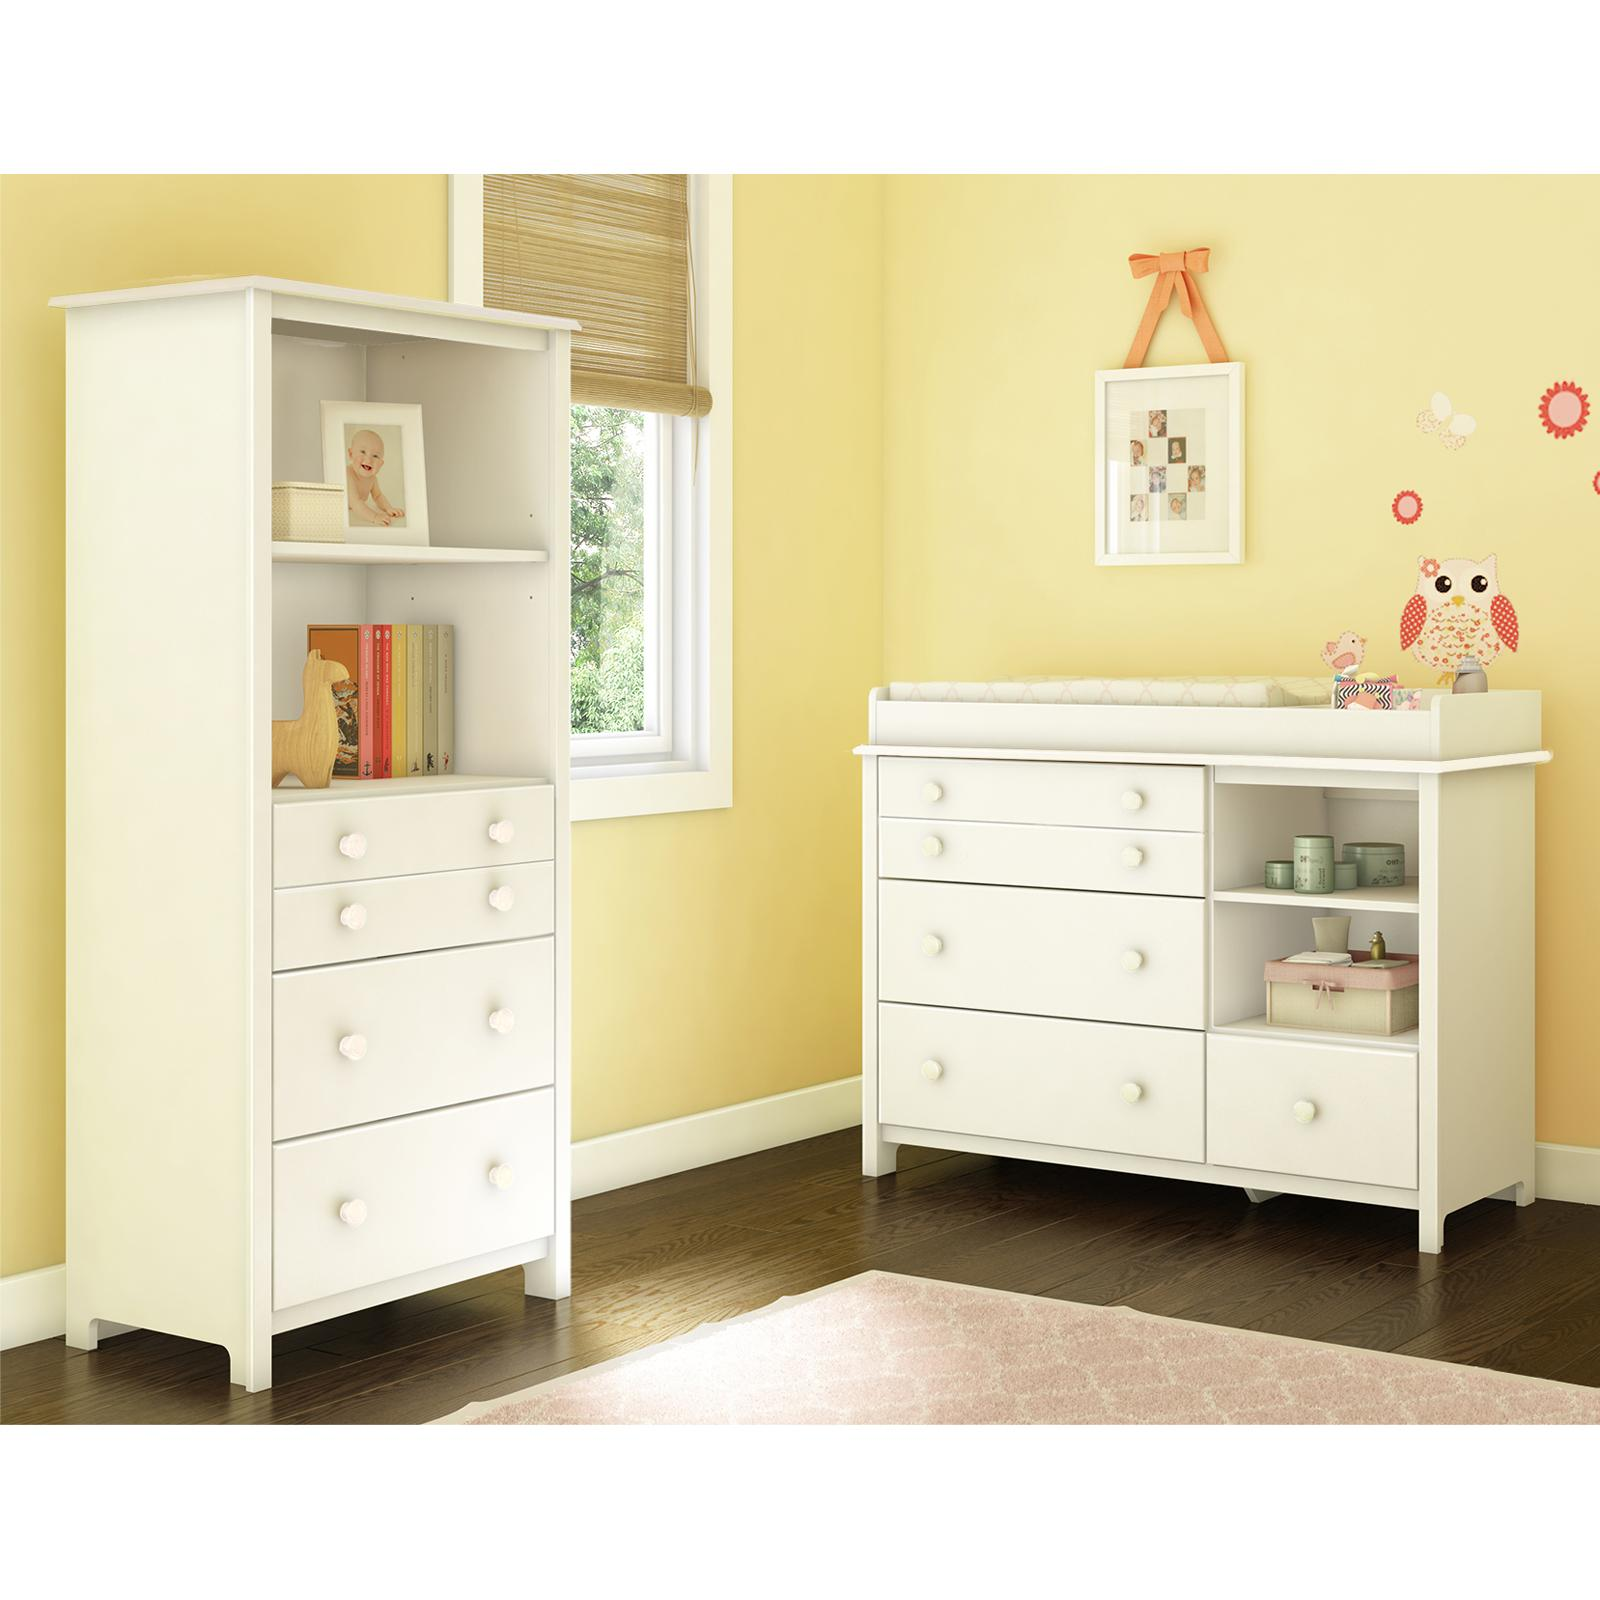 South Shore Little Smileys Changing Table with Shelving U...